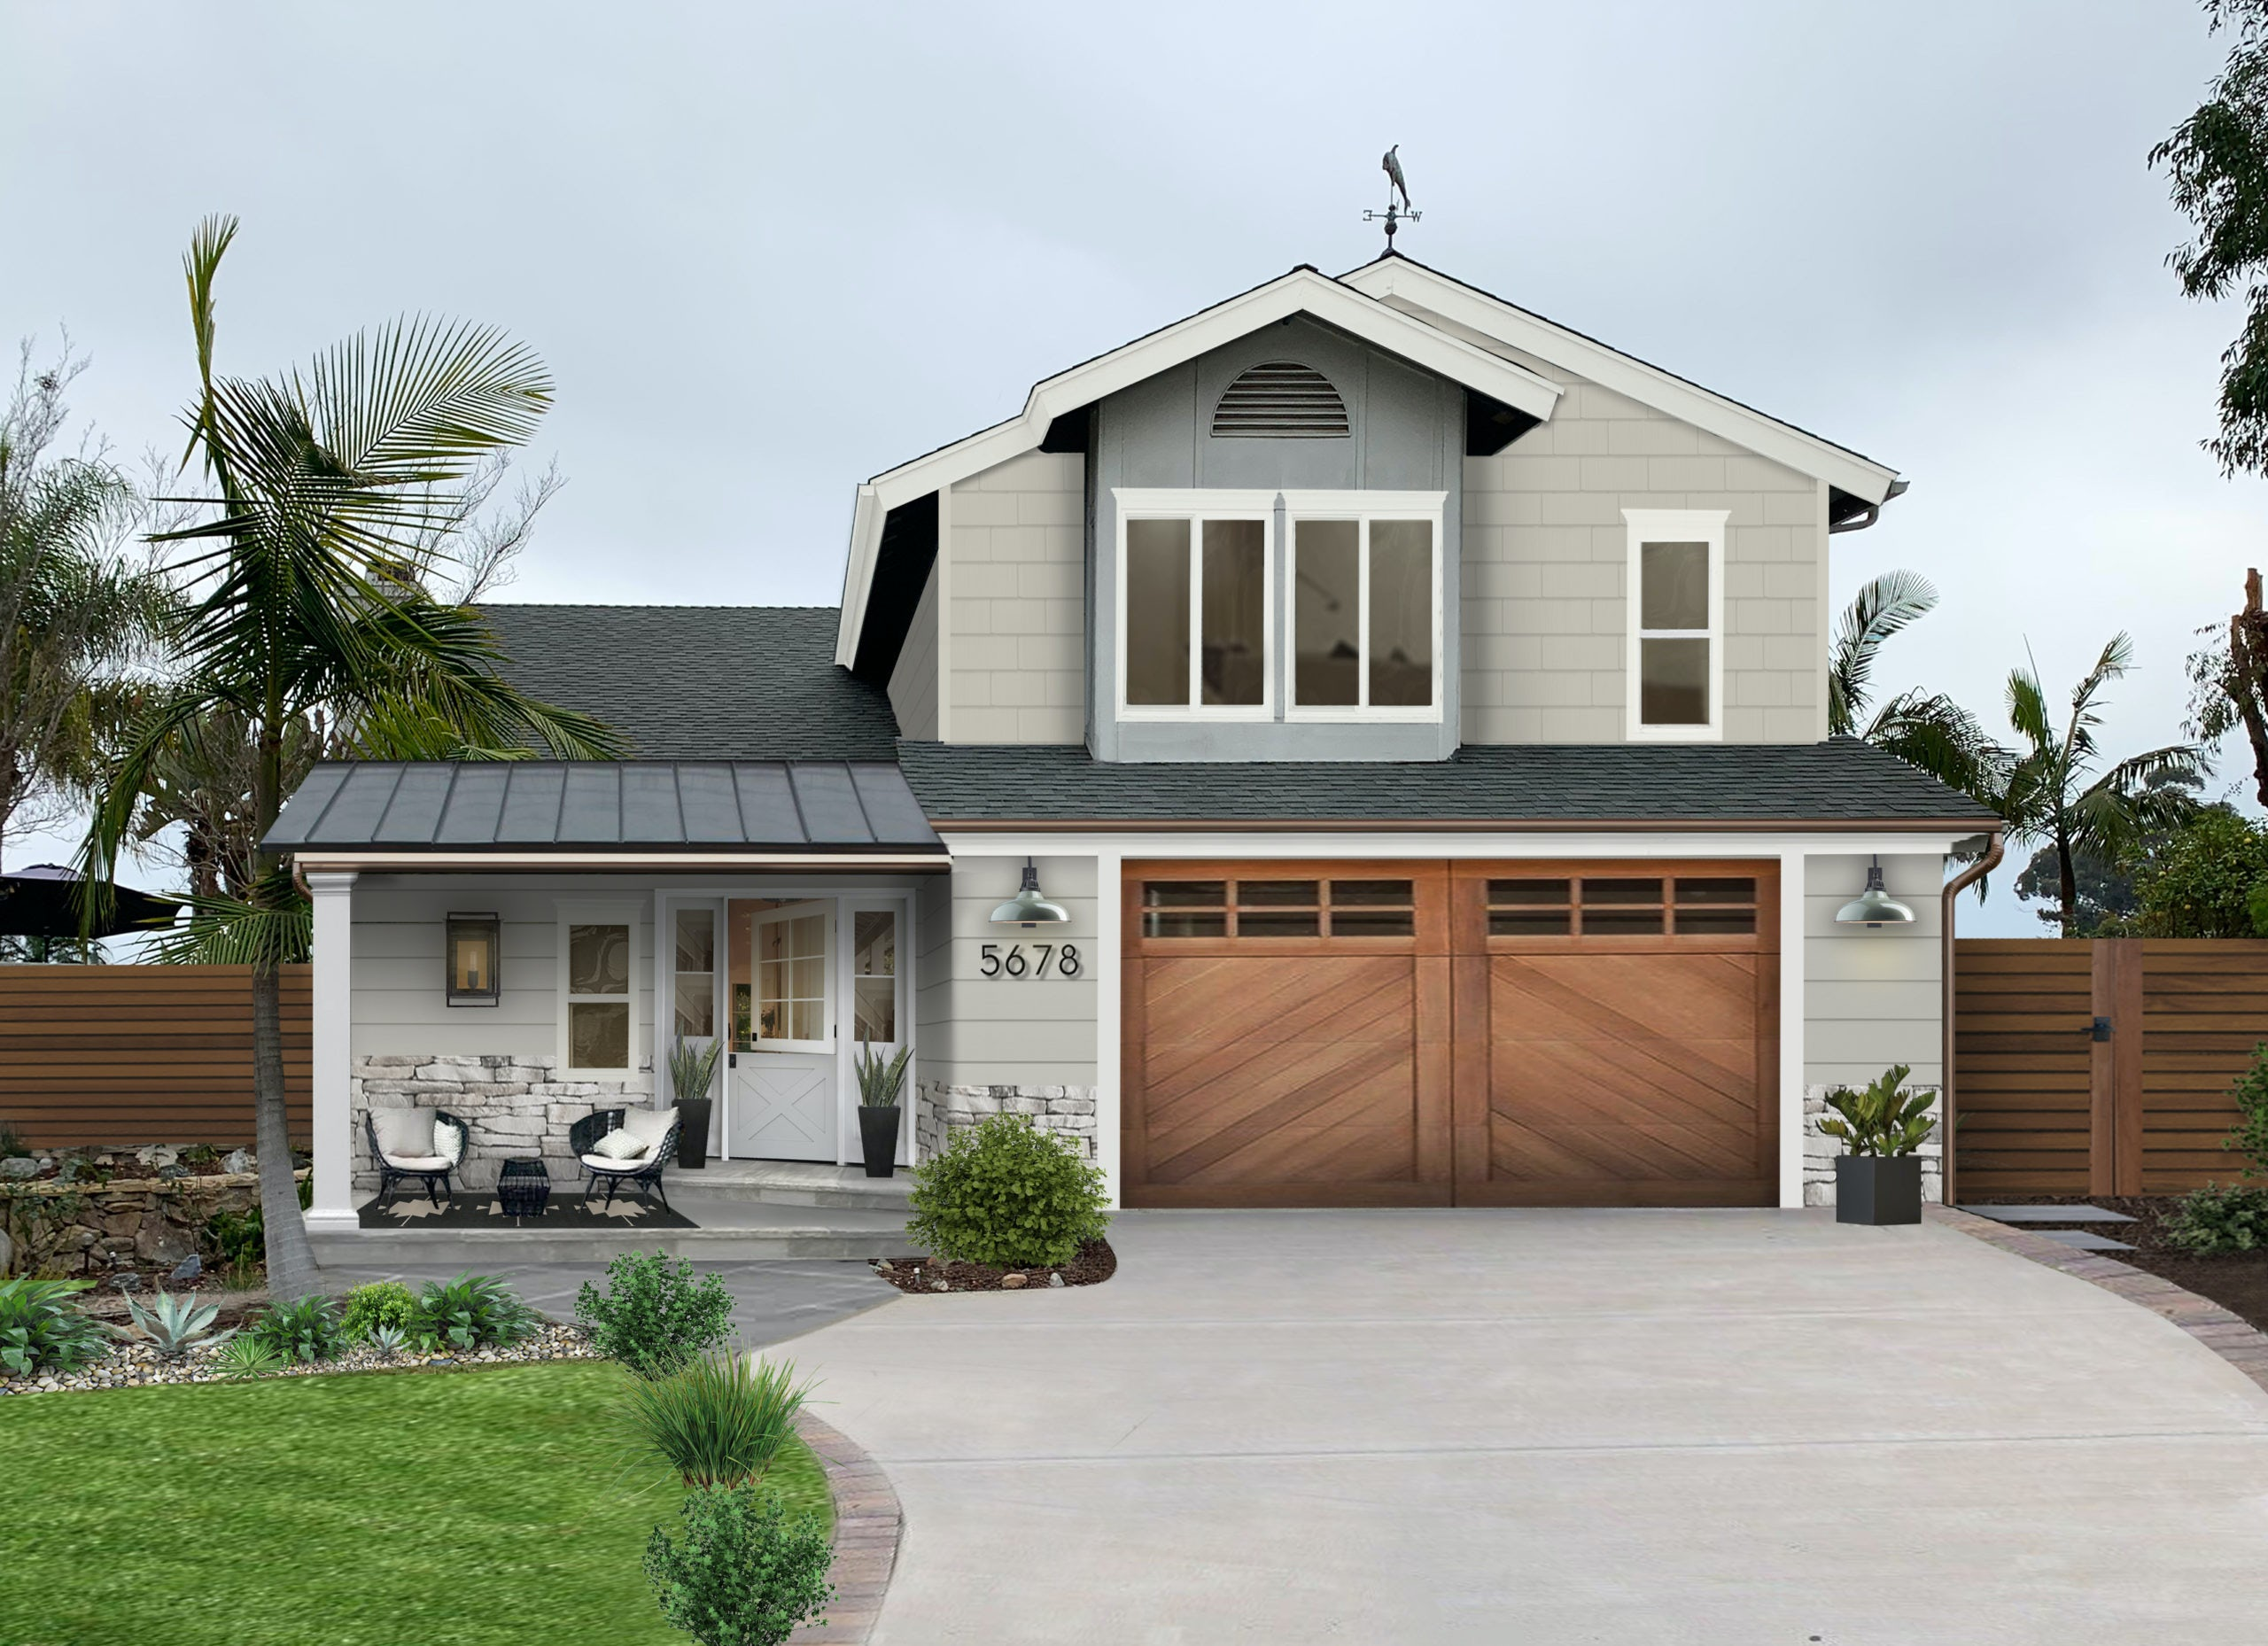 A home painted Sandy Hook Gray